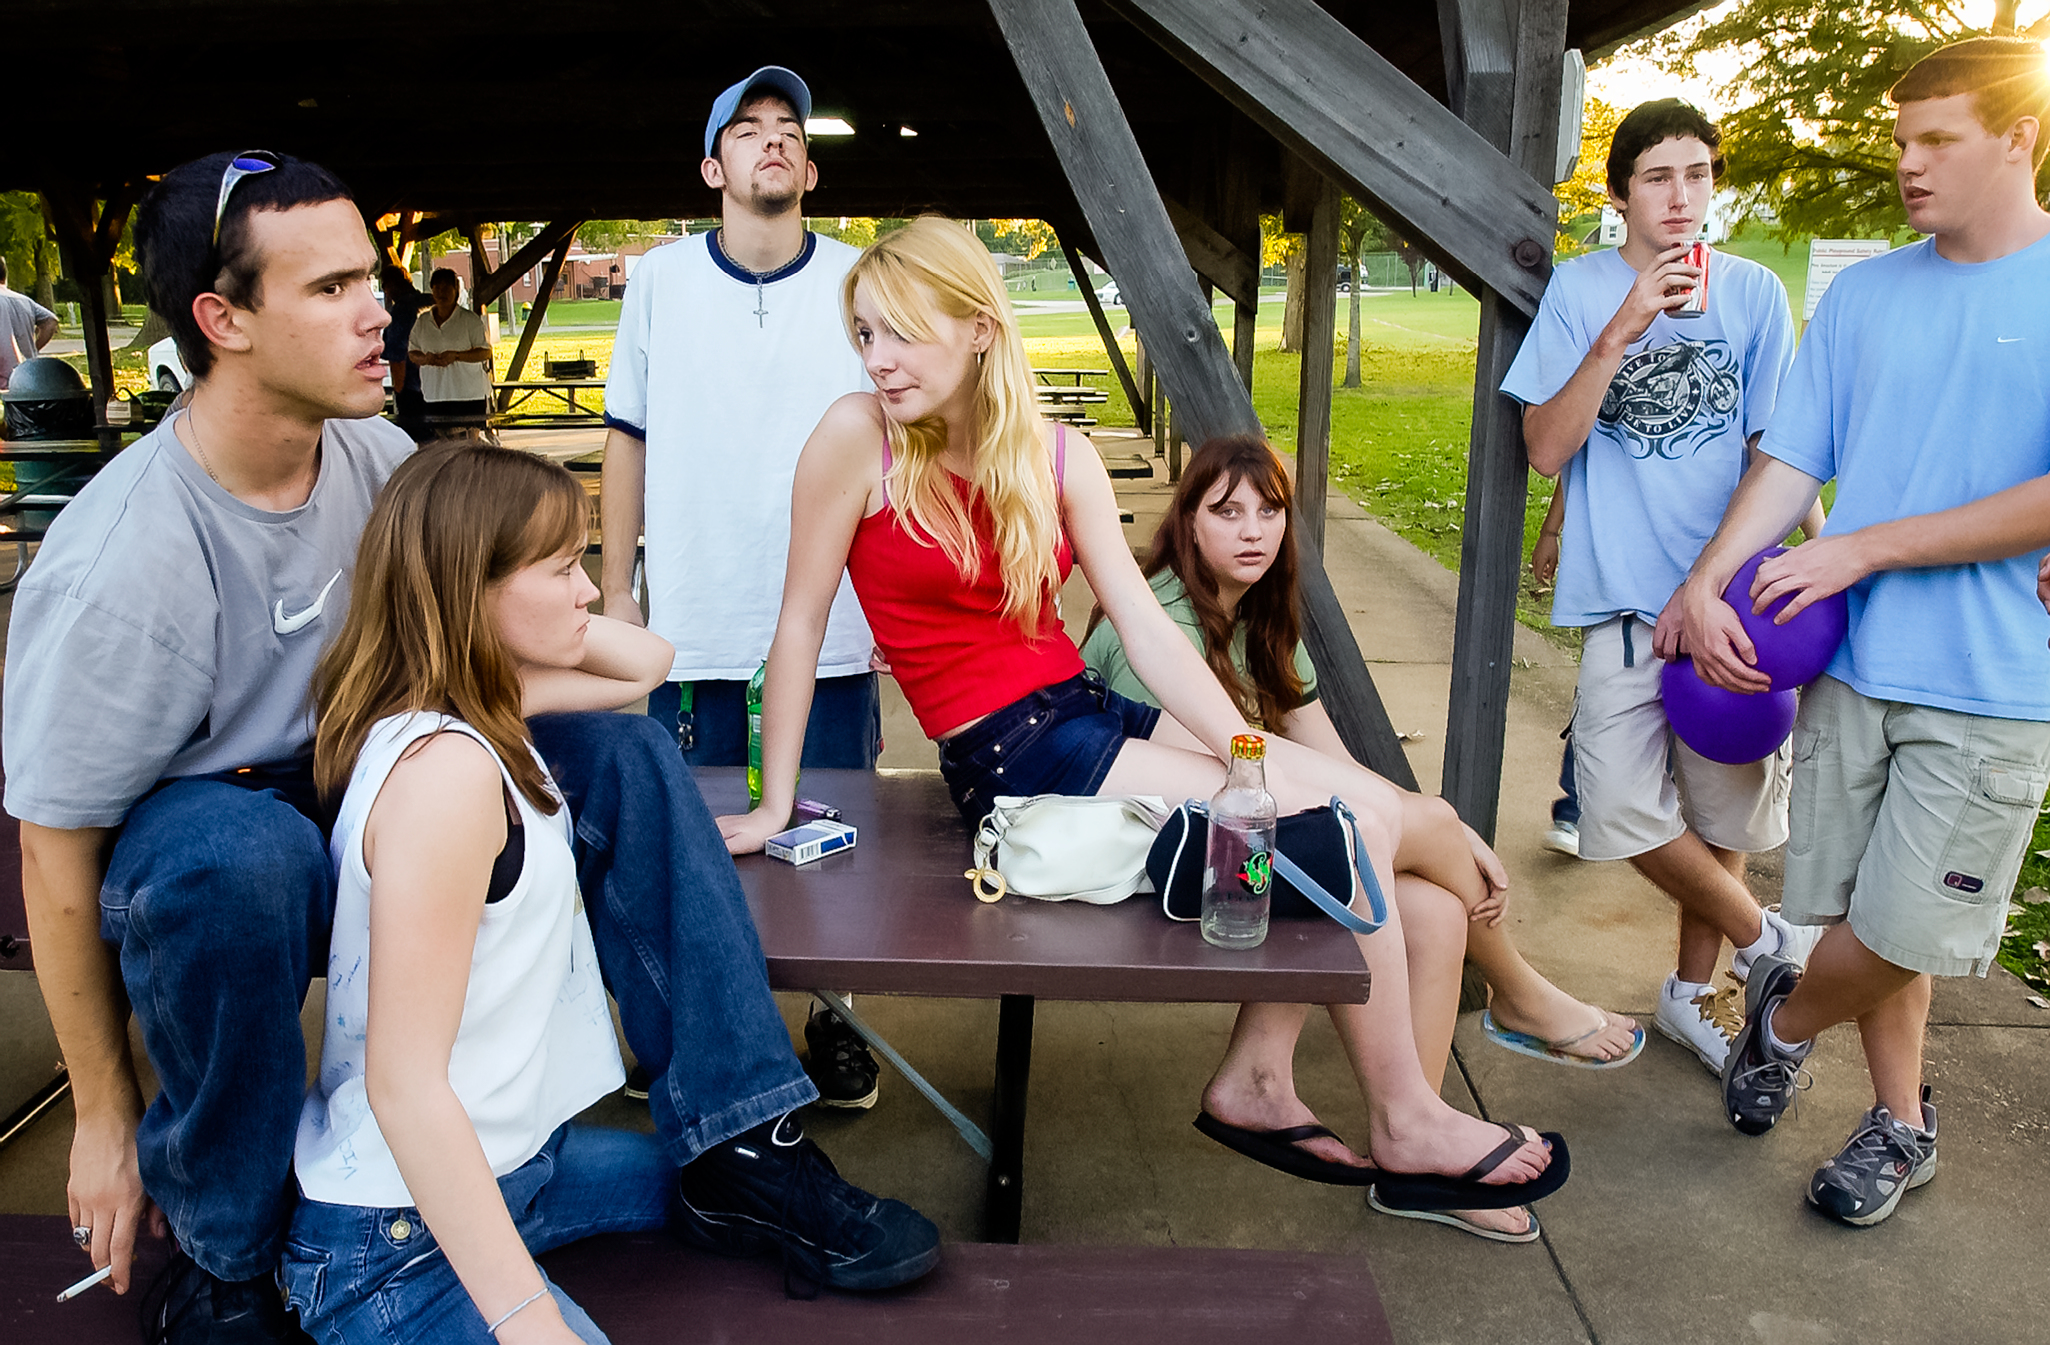 """Finding little to do Spirit and her friends hang out at the park. Most of their time involves smoking, socializing at the BP gas station, and walking around town. """"Look around you, we are in hell,"""" says Spirit."""